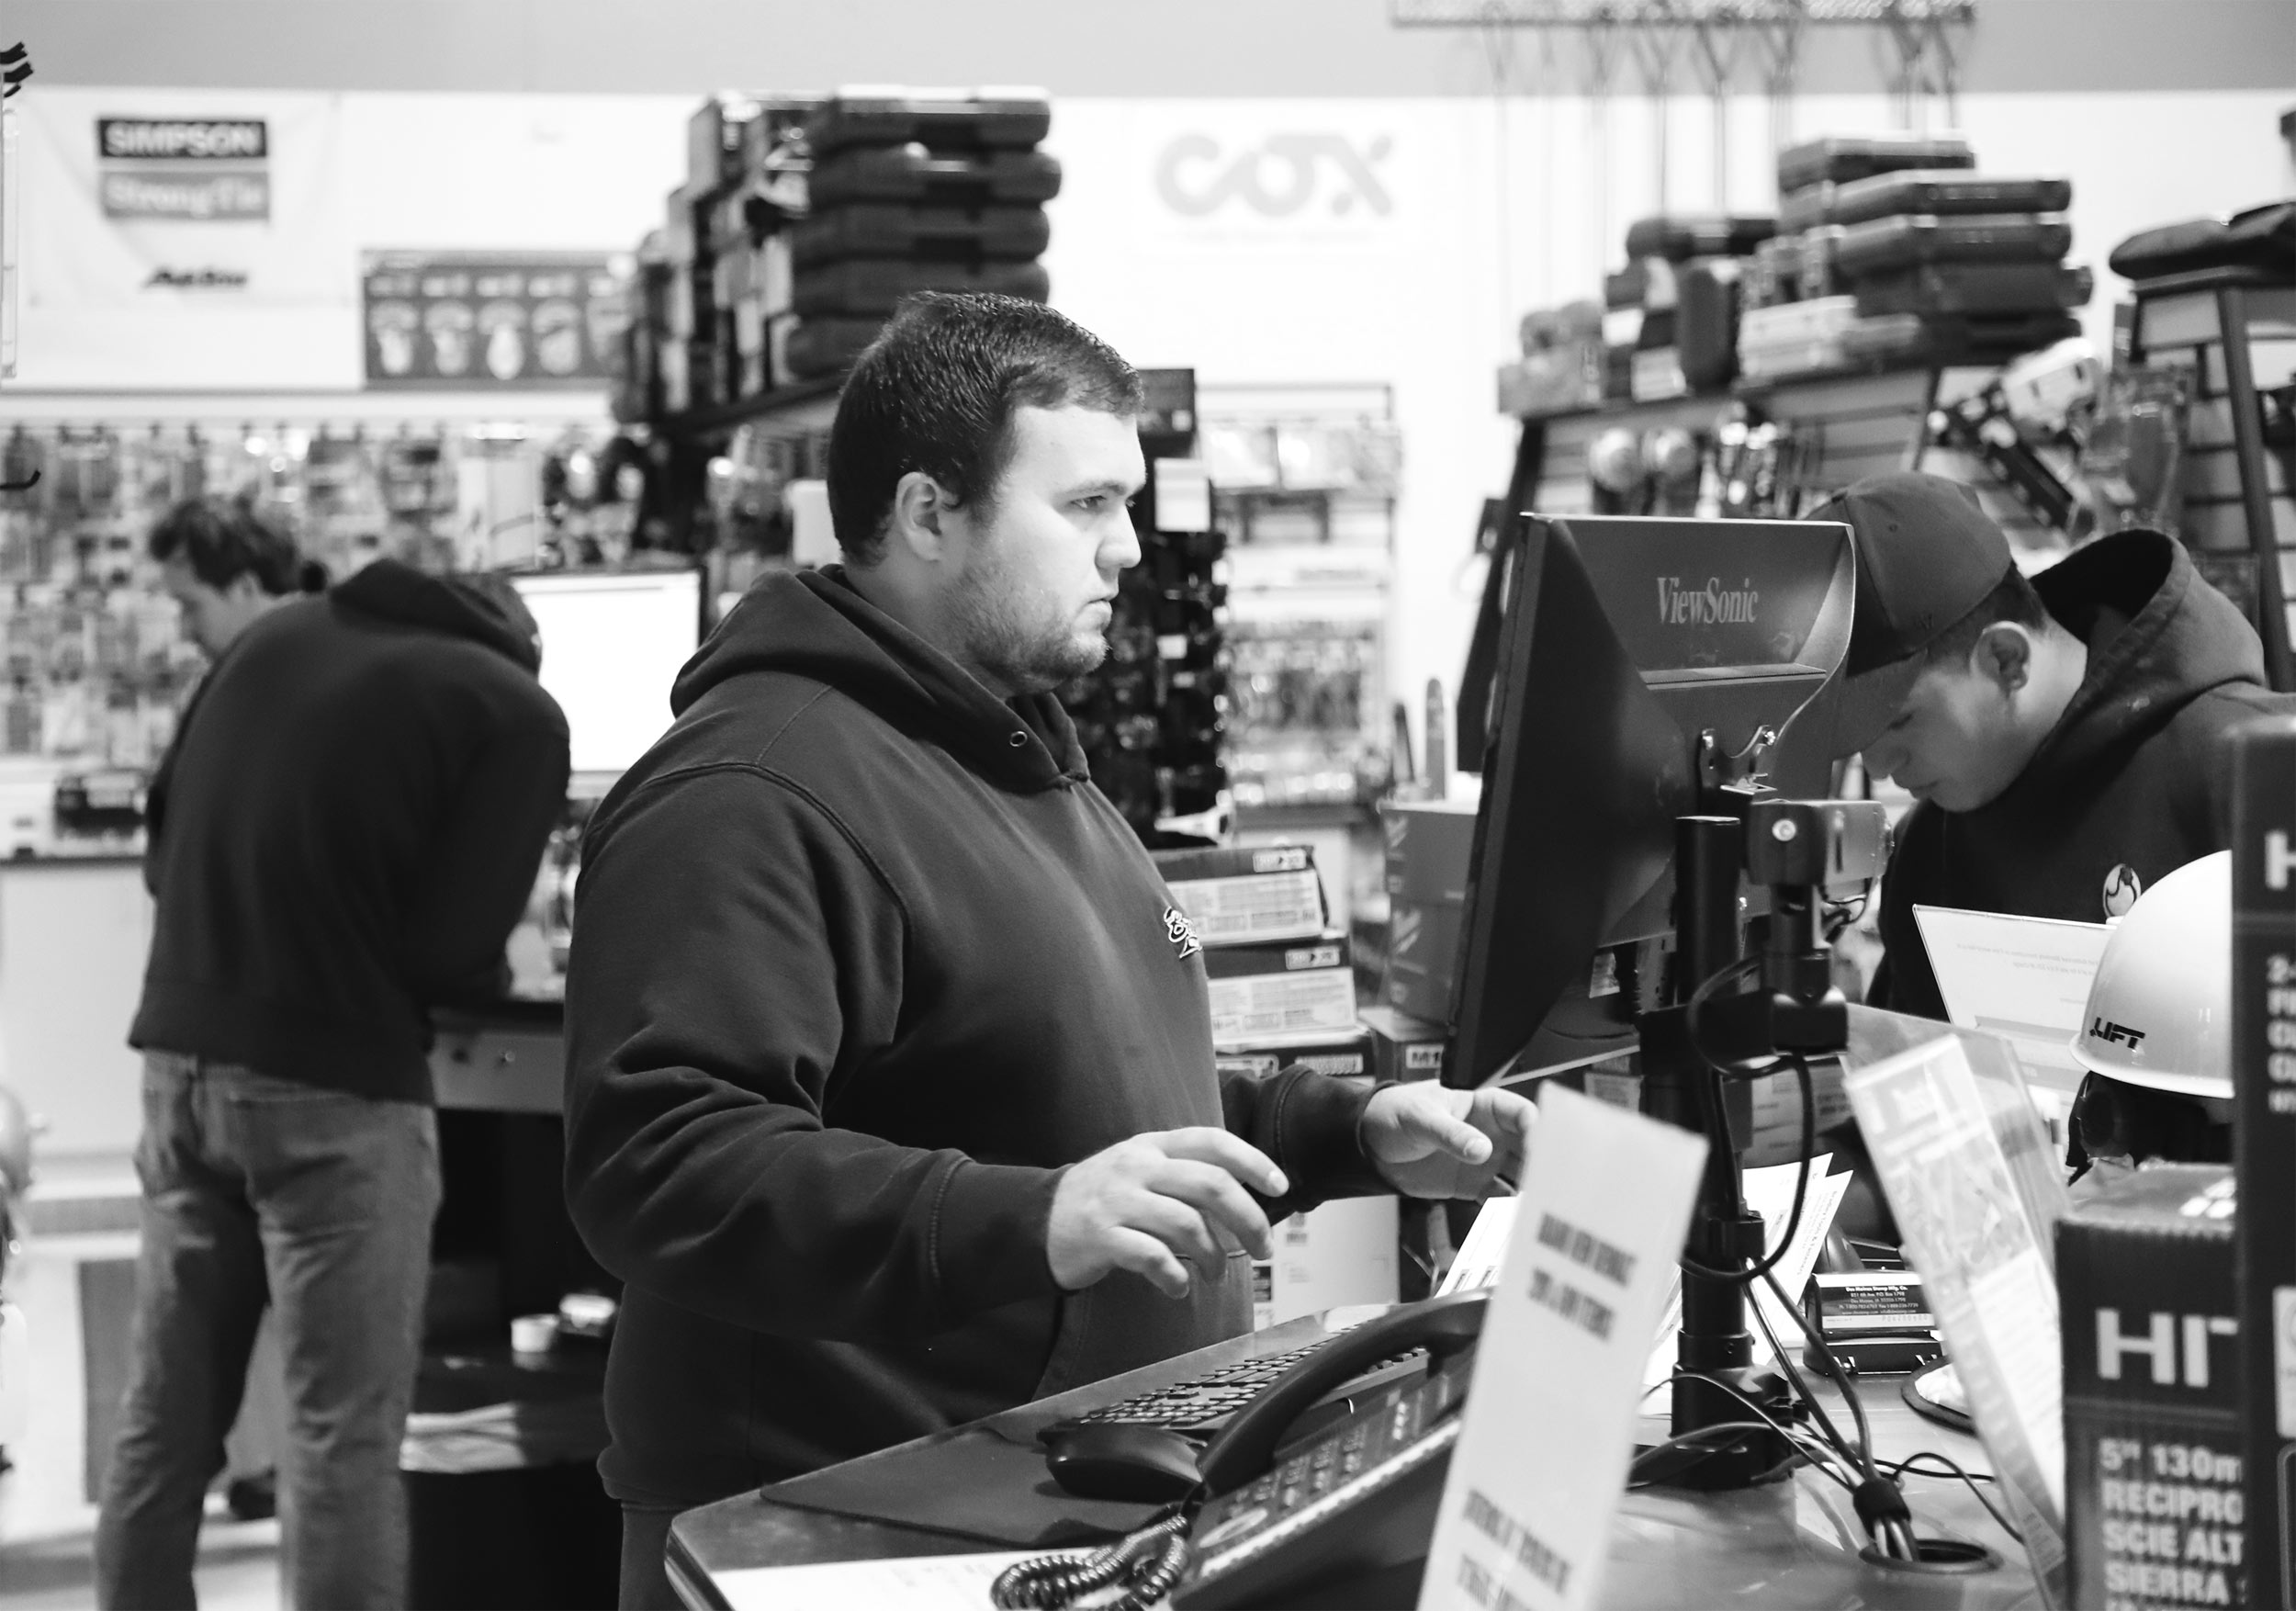 Bradley Tools Employees selling and renting tools.